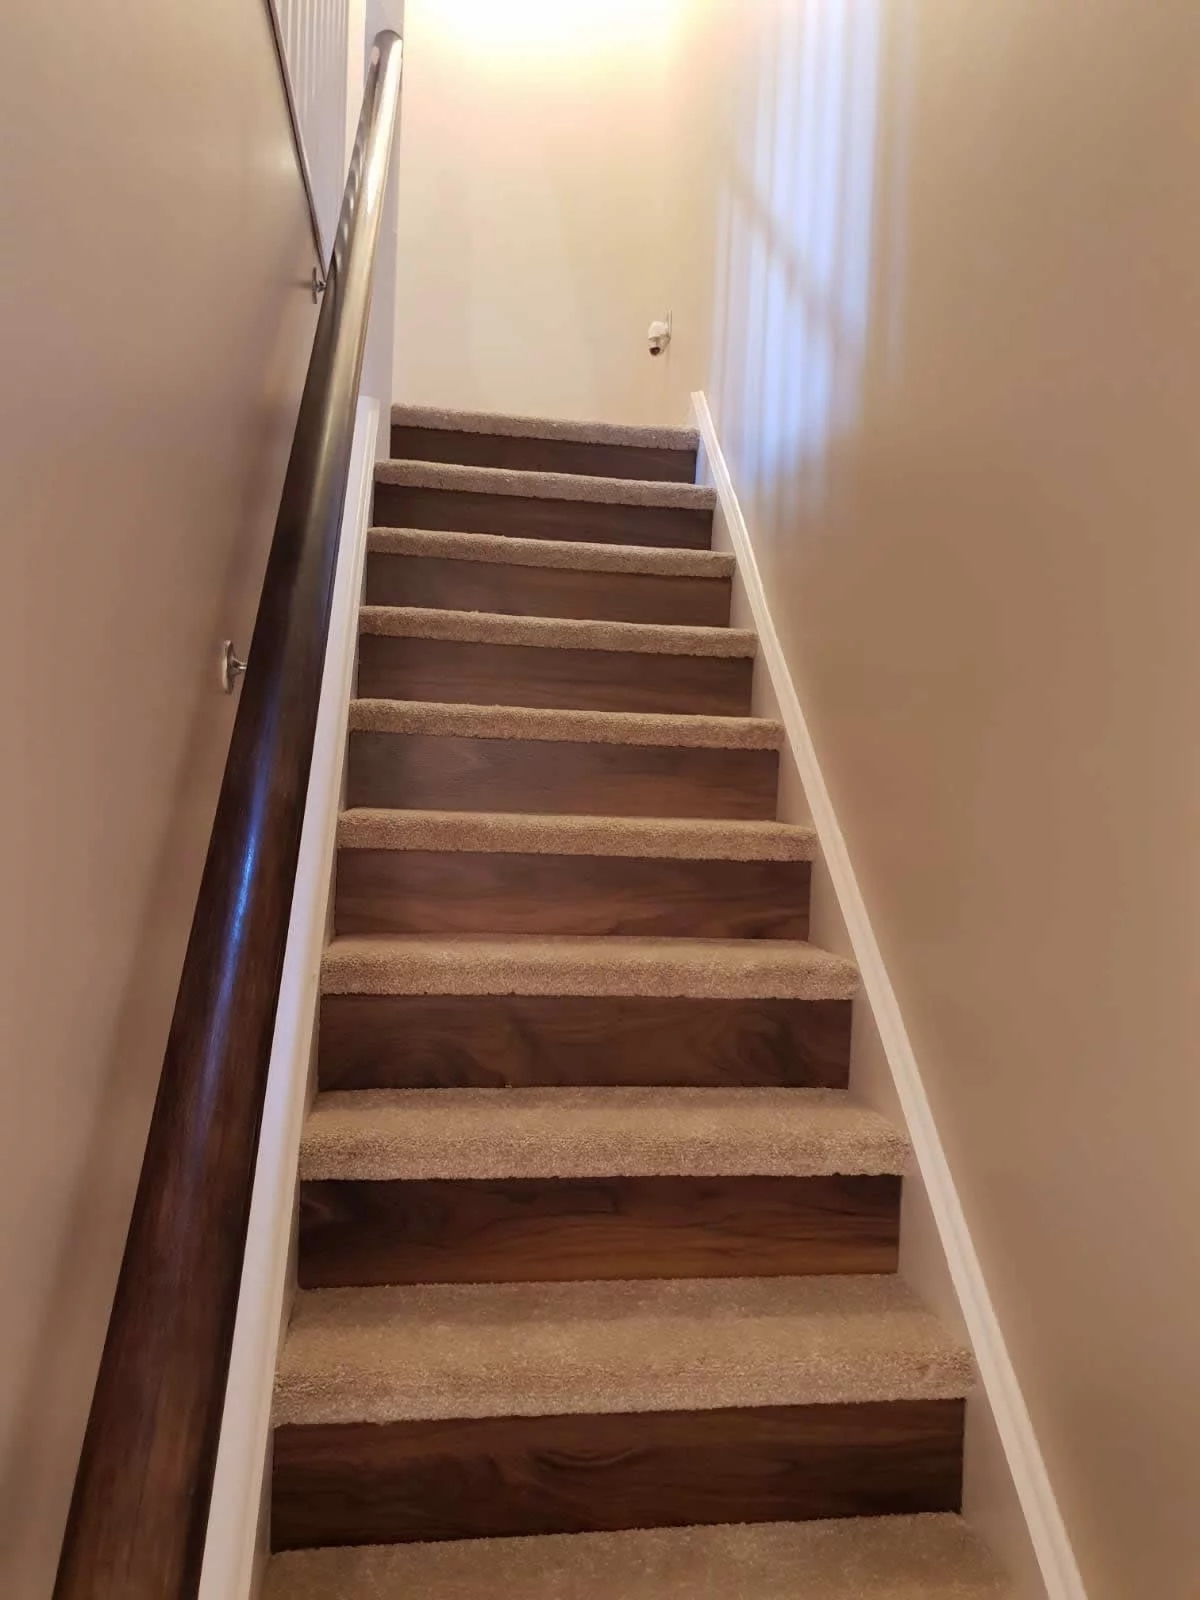 Design Your Own Stairs Factory Carpets Cork Carpets Beds | Average Price To Carpet Stairs | Stair Case | Hardwood Stairs | Flooring | Hardwood Flooring | Measure